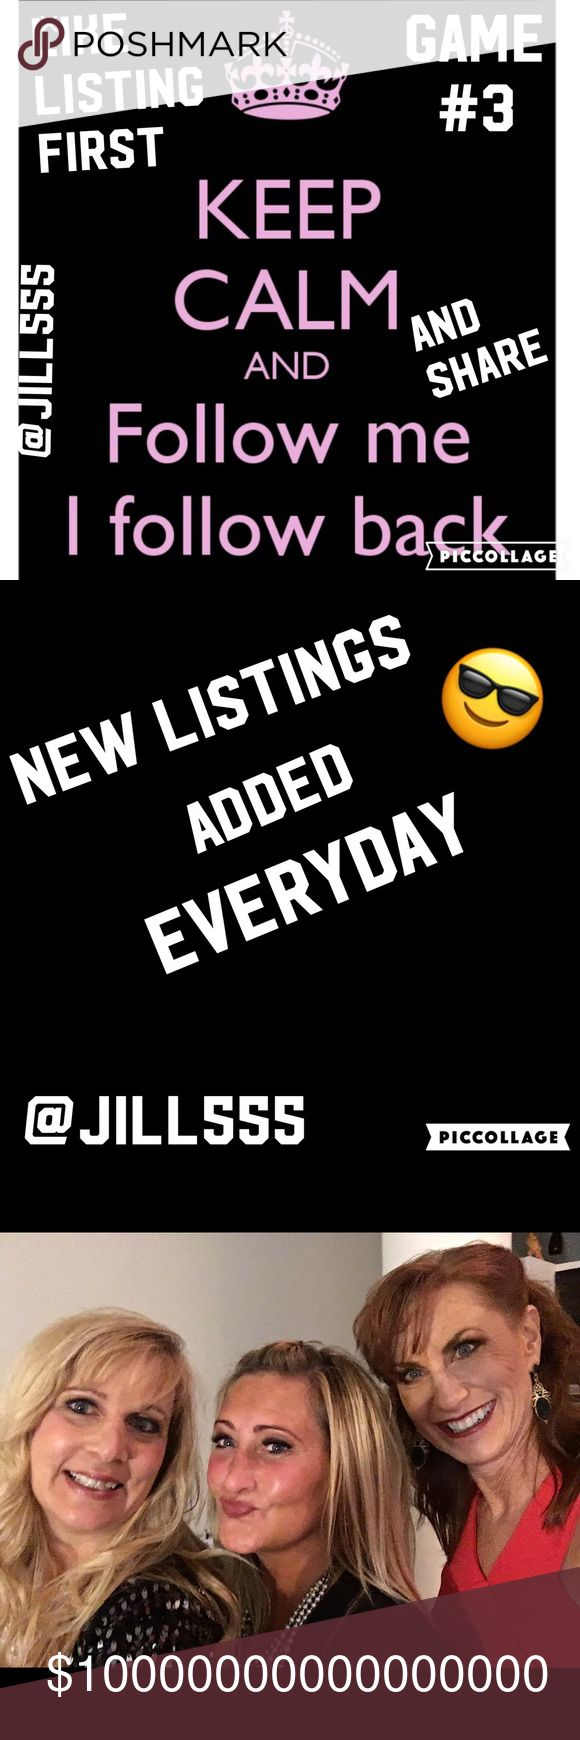 🎈LIKE, FOLLOW, SHARE and TAG your name for HP🎈 🎈Like this listing first and follow and then share. Tag your PFF's. I'm hosting a virtual party that night 8-9. If you do all the above then tag me in a listing in your closet for a GIRLS NIGHT OUT HOST PICK! 🎉🎂❤️🎈👏 Other